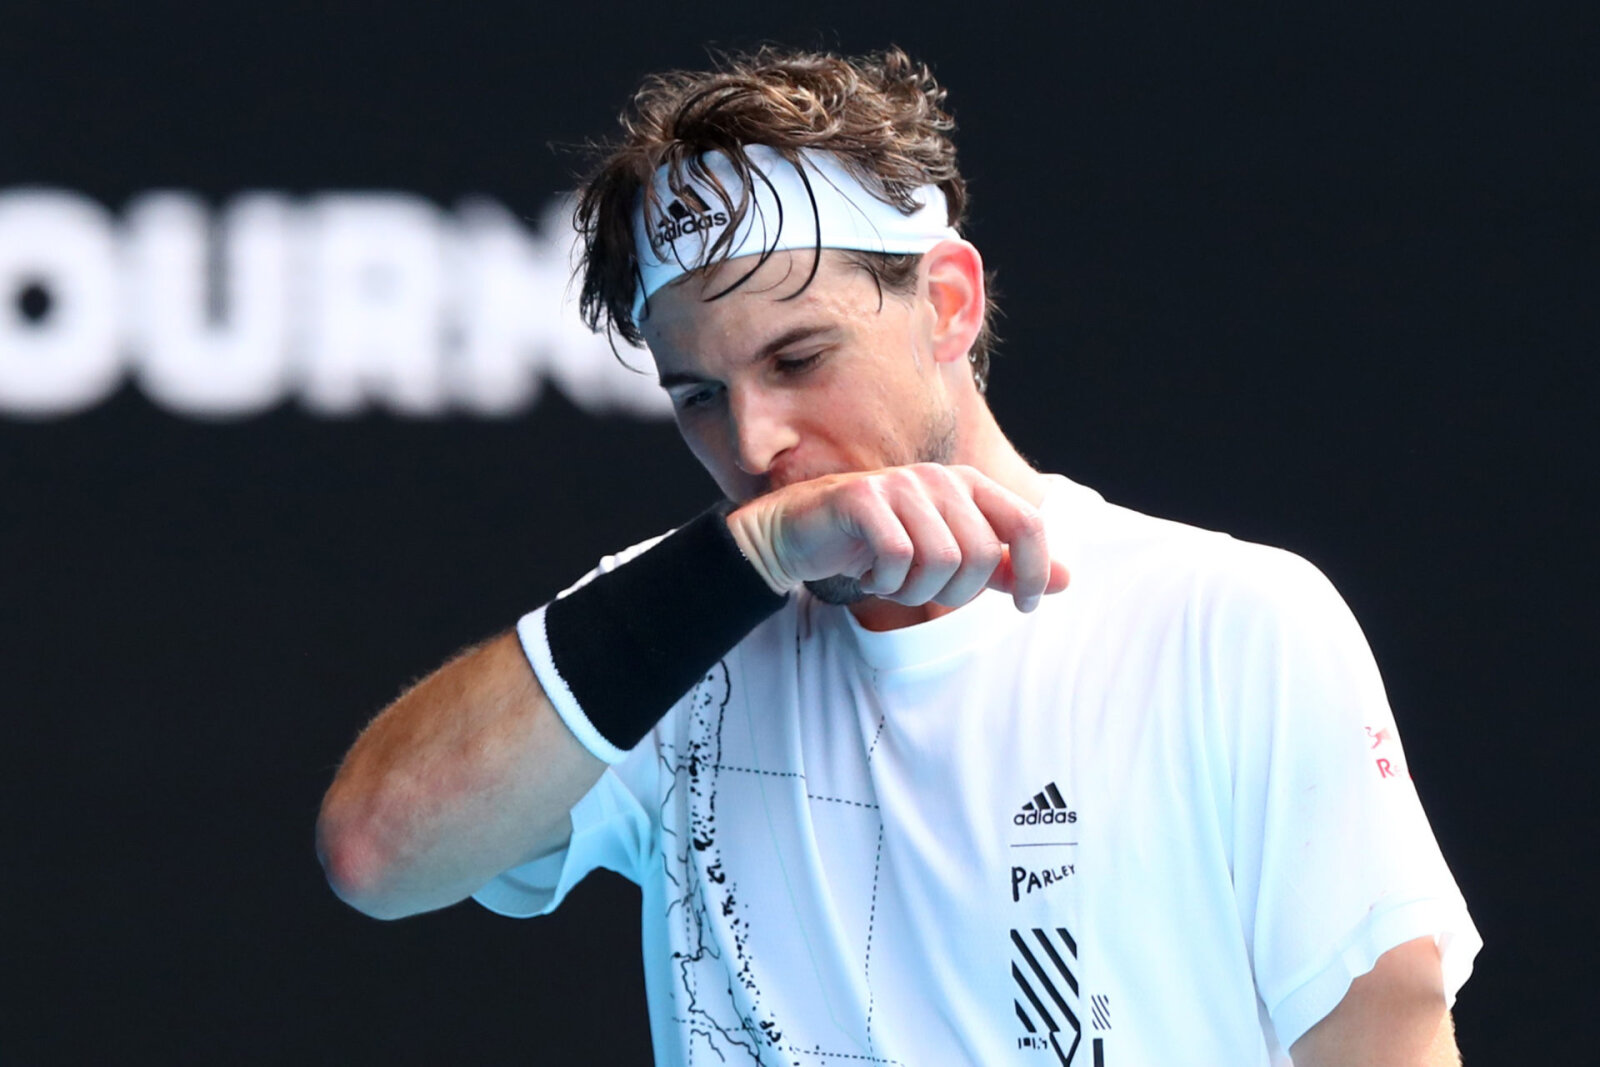 Dominic Thiem Reportedly Set To Miss Wimbledon Championships 2021 Due to Wrist Injury